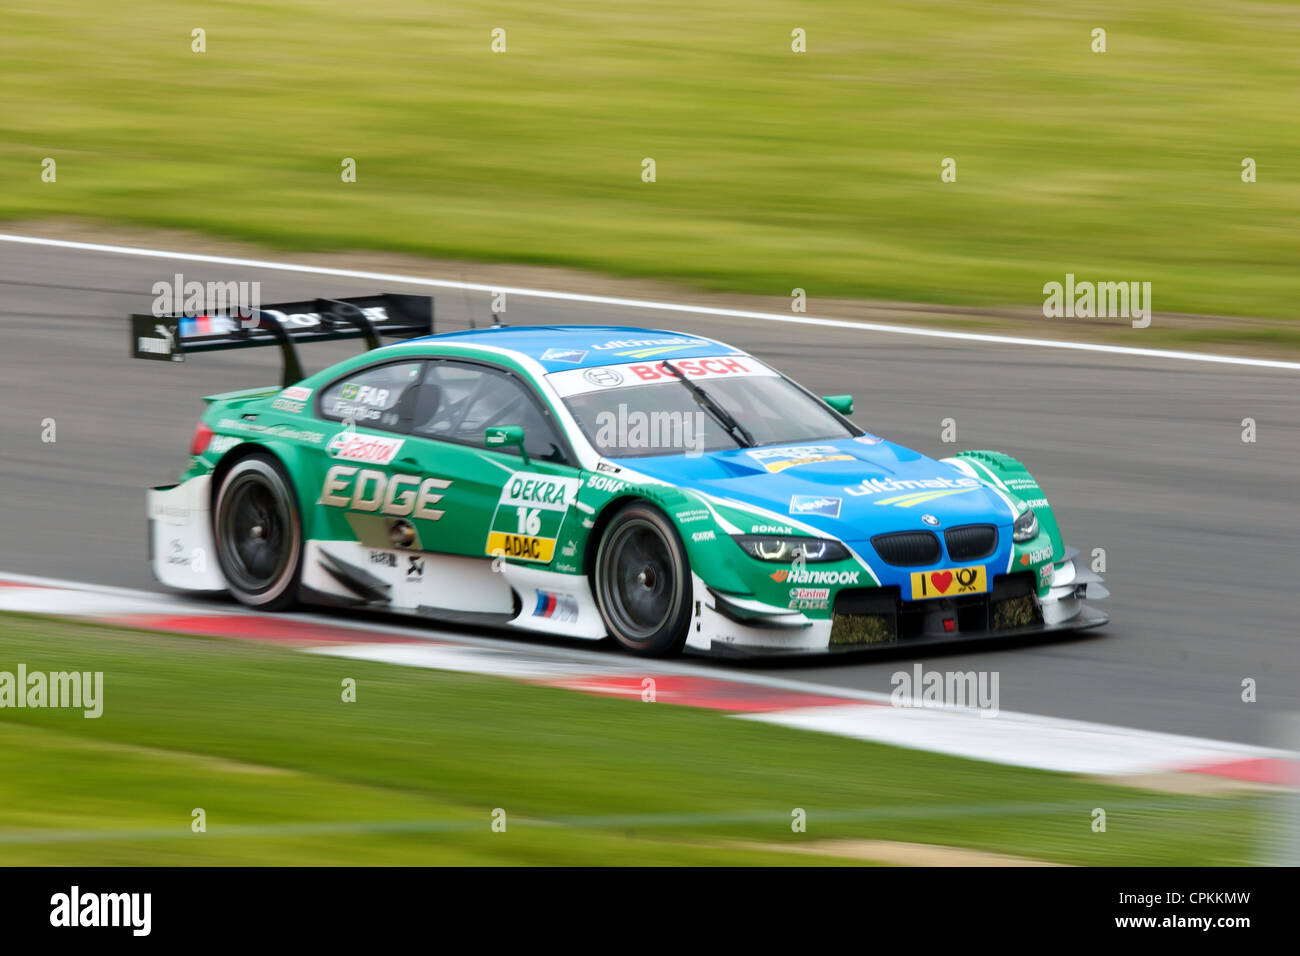 Augusto Farfus in a BMW DTM car at Brands Hatch 2012 - Stock Image